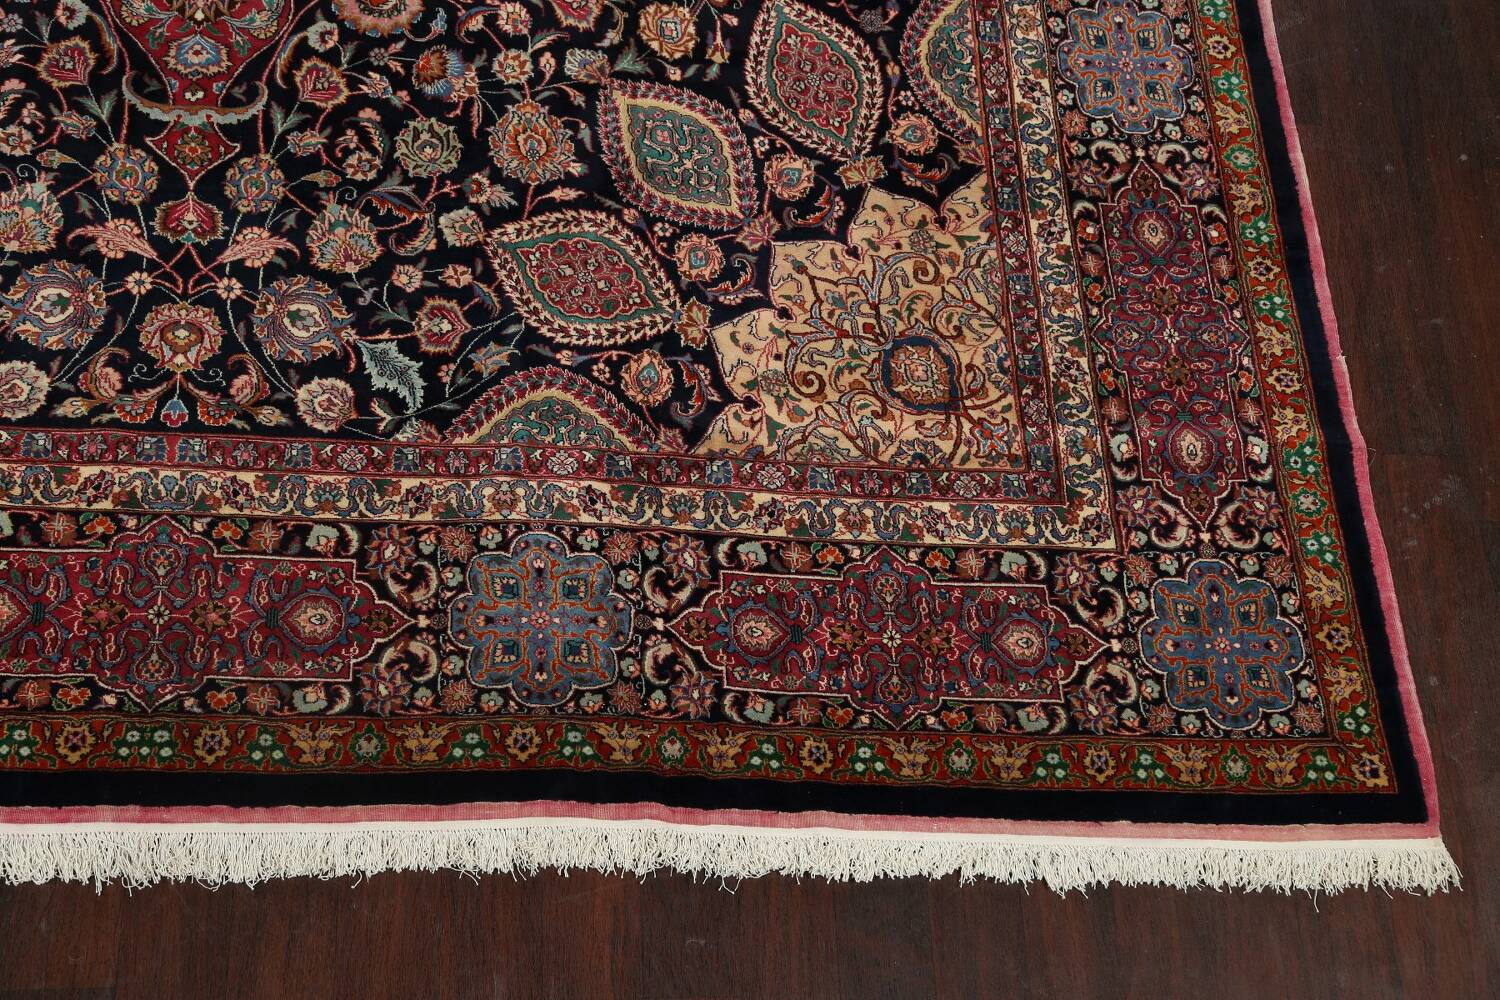 Large Floral Mashad Persian Area Rug 11x15 image 5